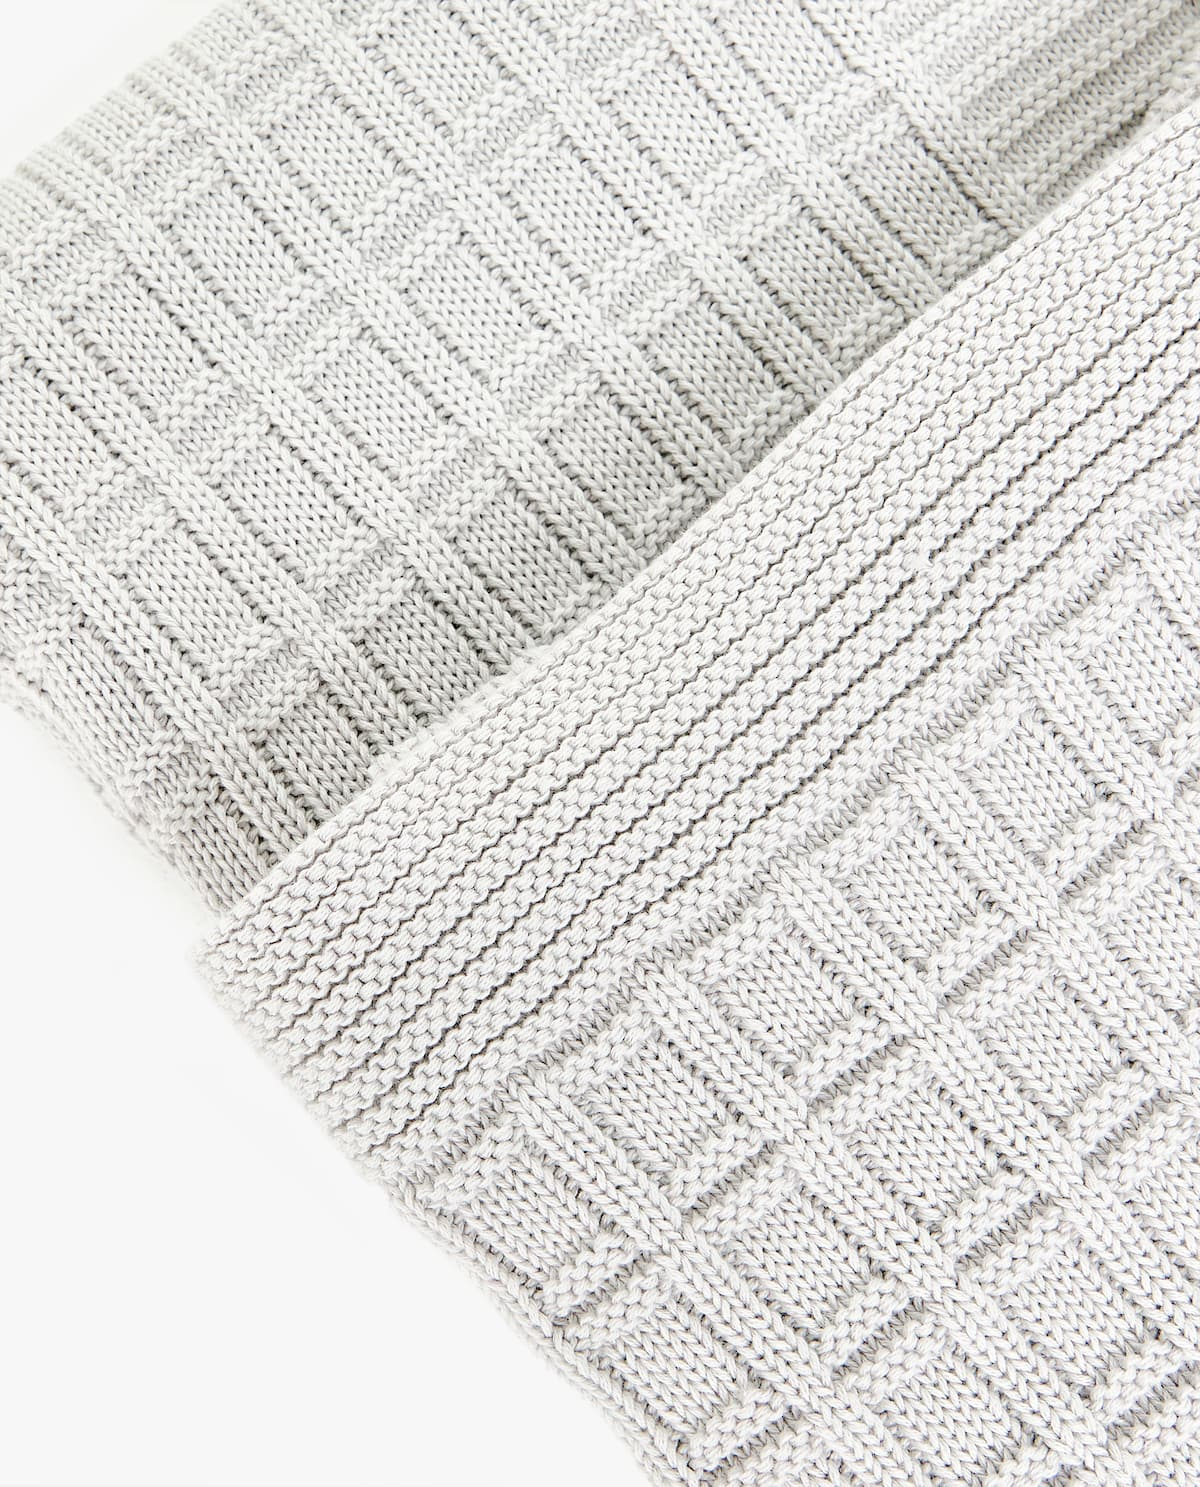 CHECK KNIT COTTON BLANKET - COLLECTION - JOIN LIFE   Zara Home ...